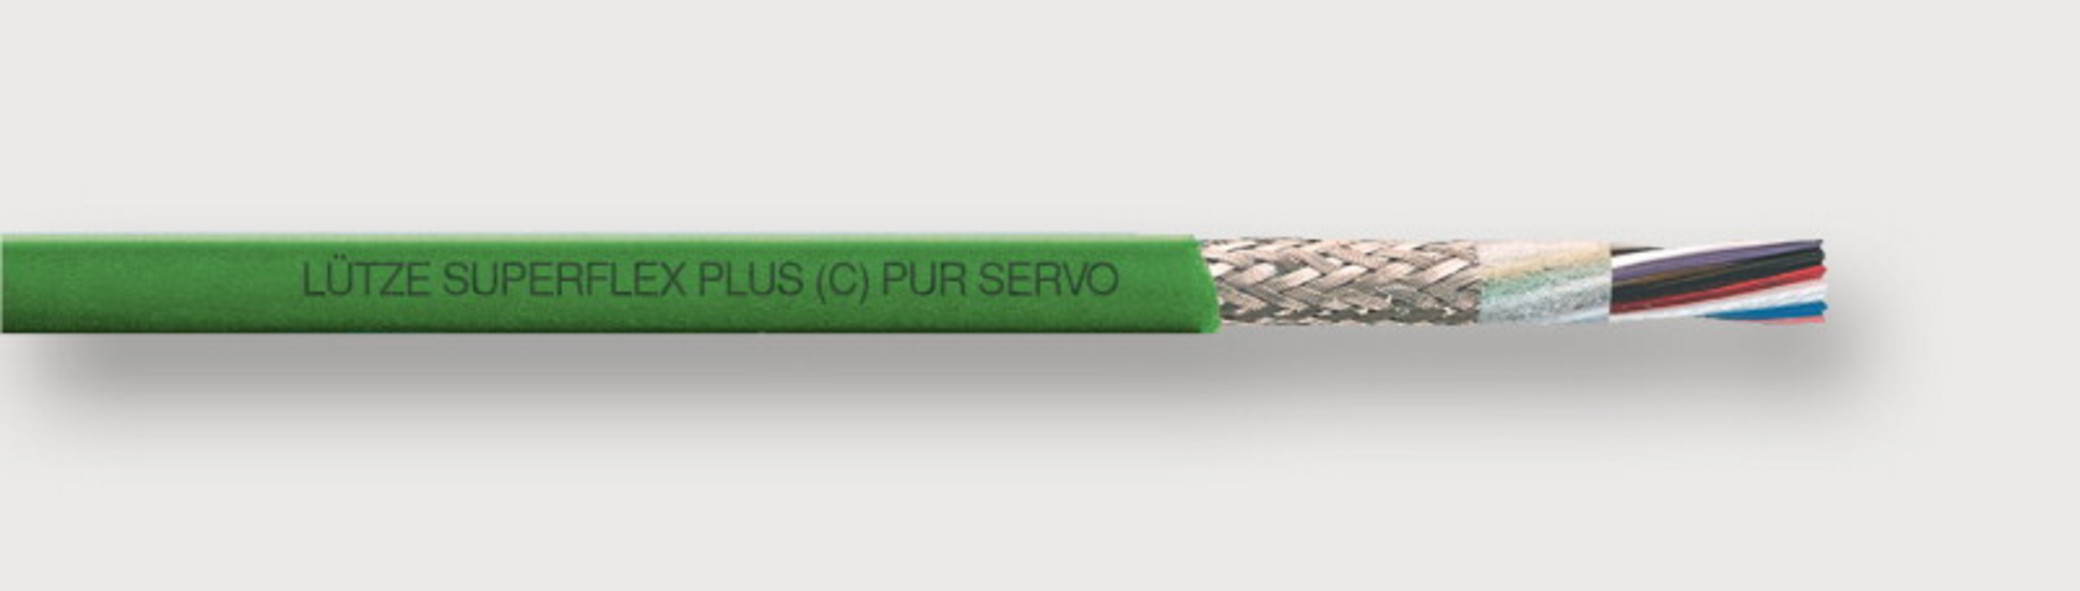 111458 - LÜTZE SUPERFLEX® PLUS (C) PUR FEEDBACK Encoder cables for Siemens and other systems For highest requirements in drive technology